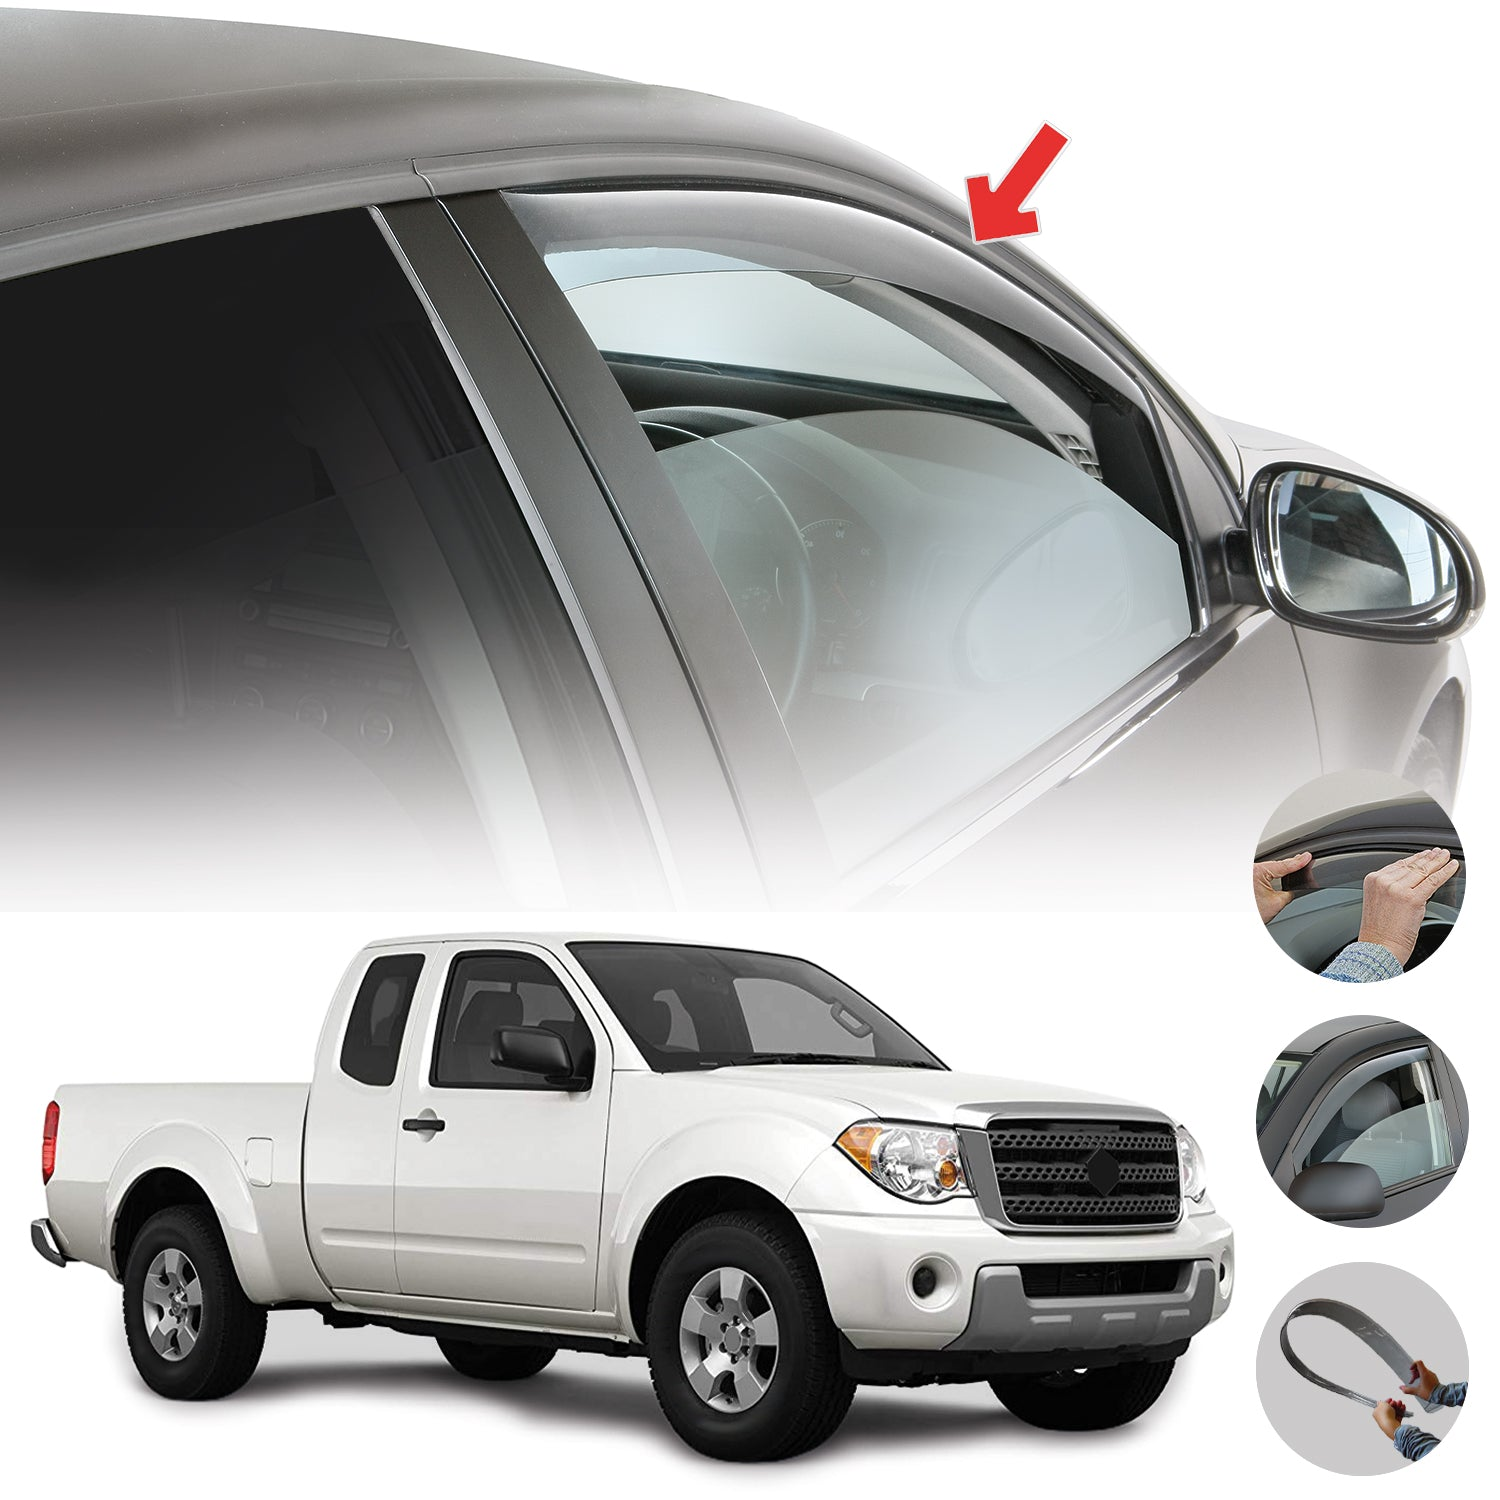 Window Visor Vent Sun Shade Rain Guard 2pcs Fits Suzuki Equator 2009-2012